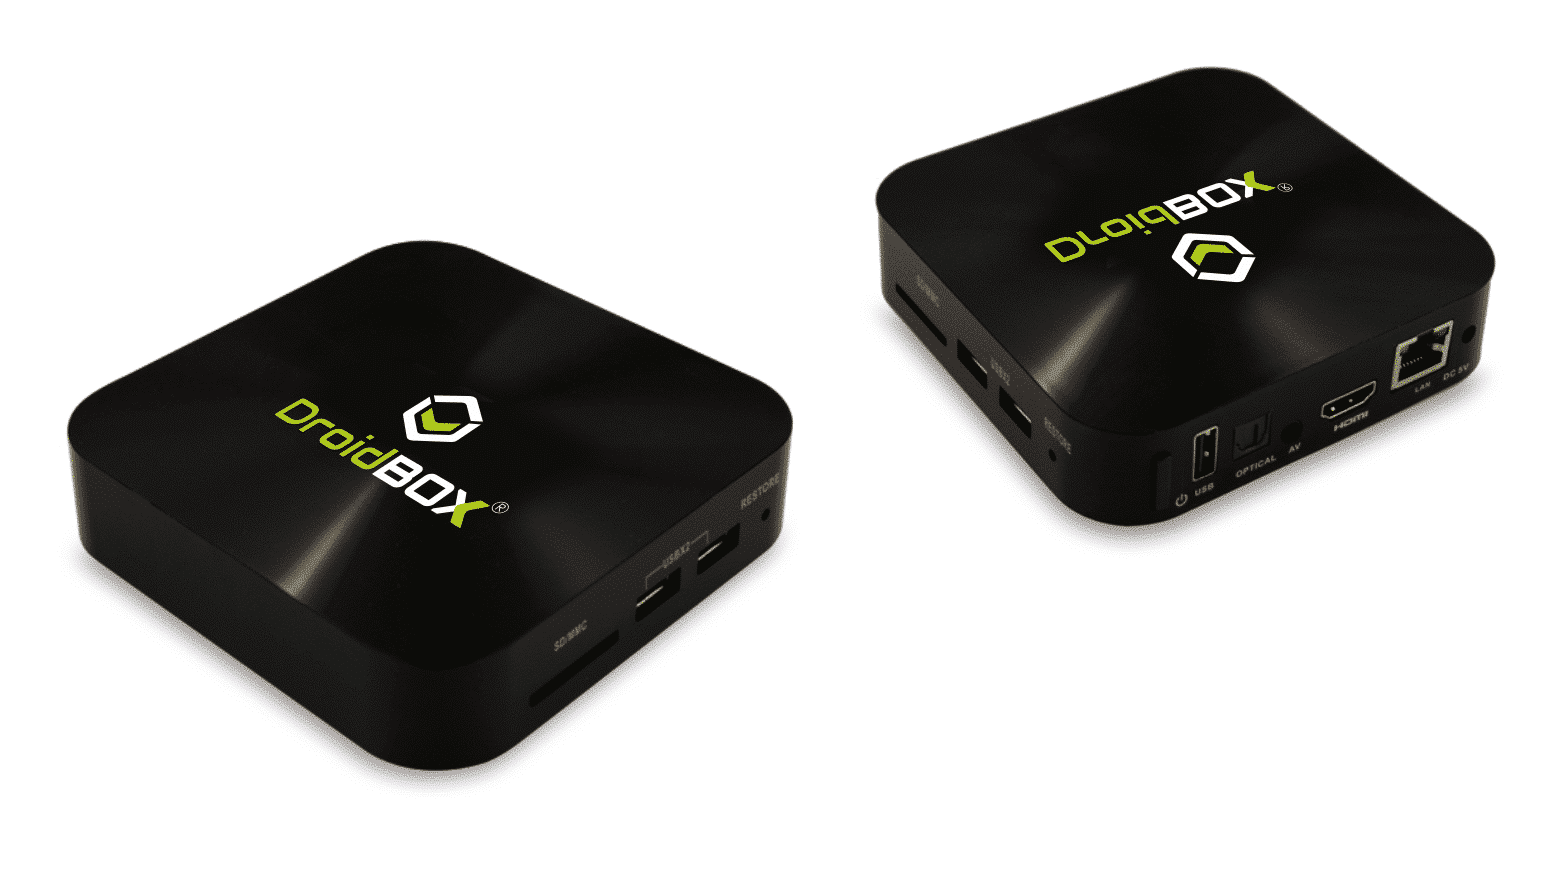 DroidBOX K5 (Refurbished) front and rear view